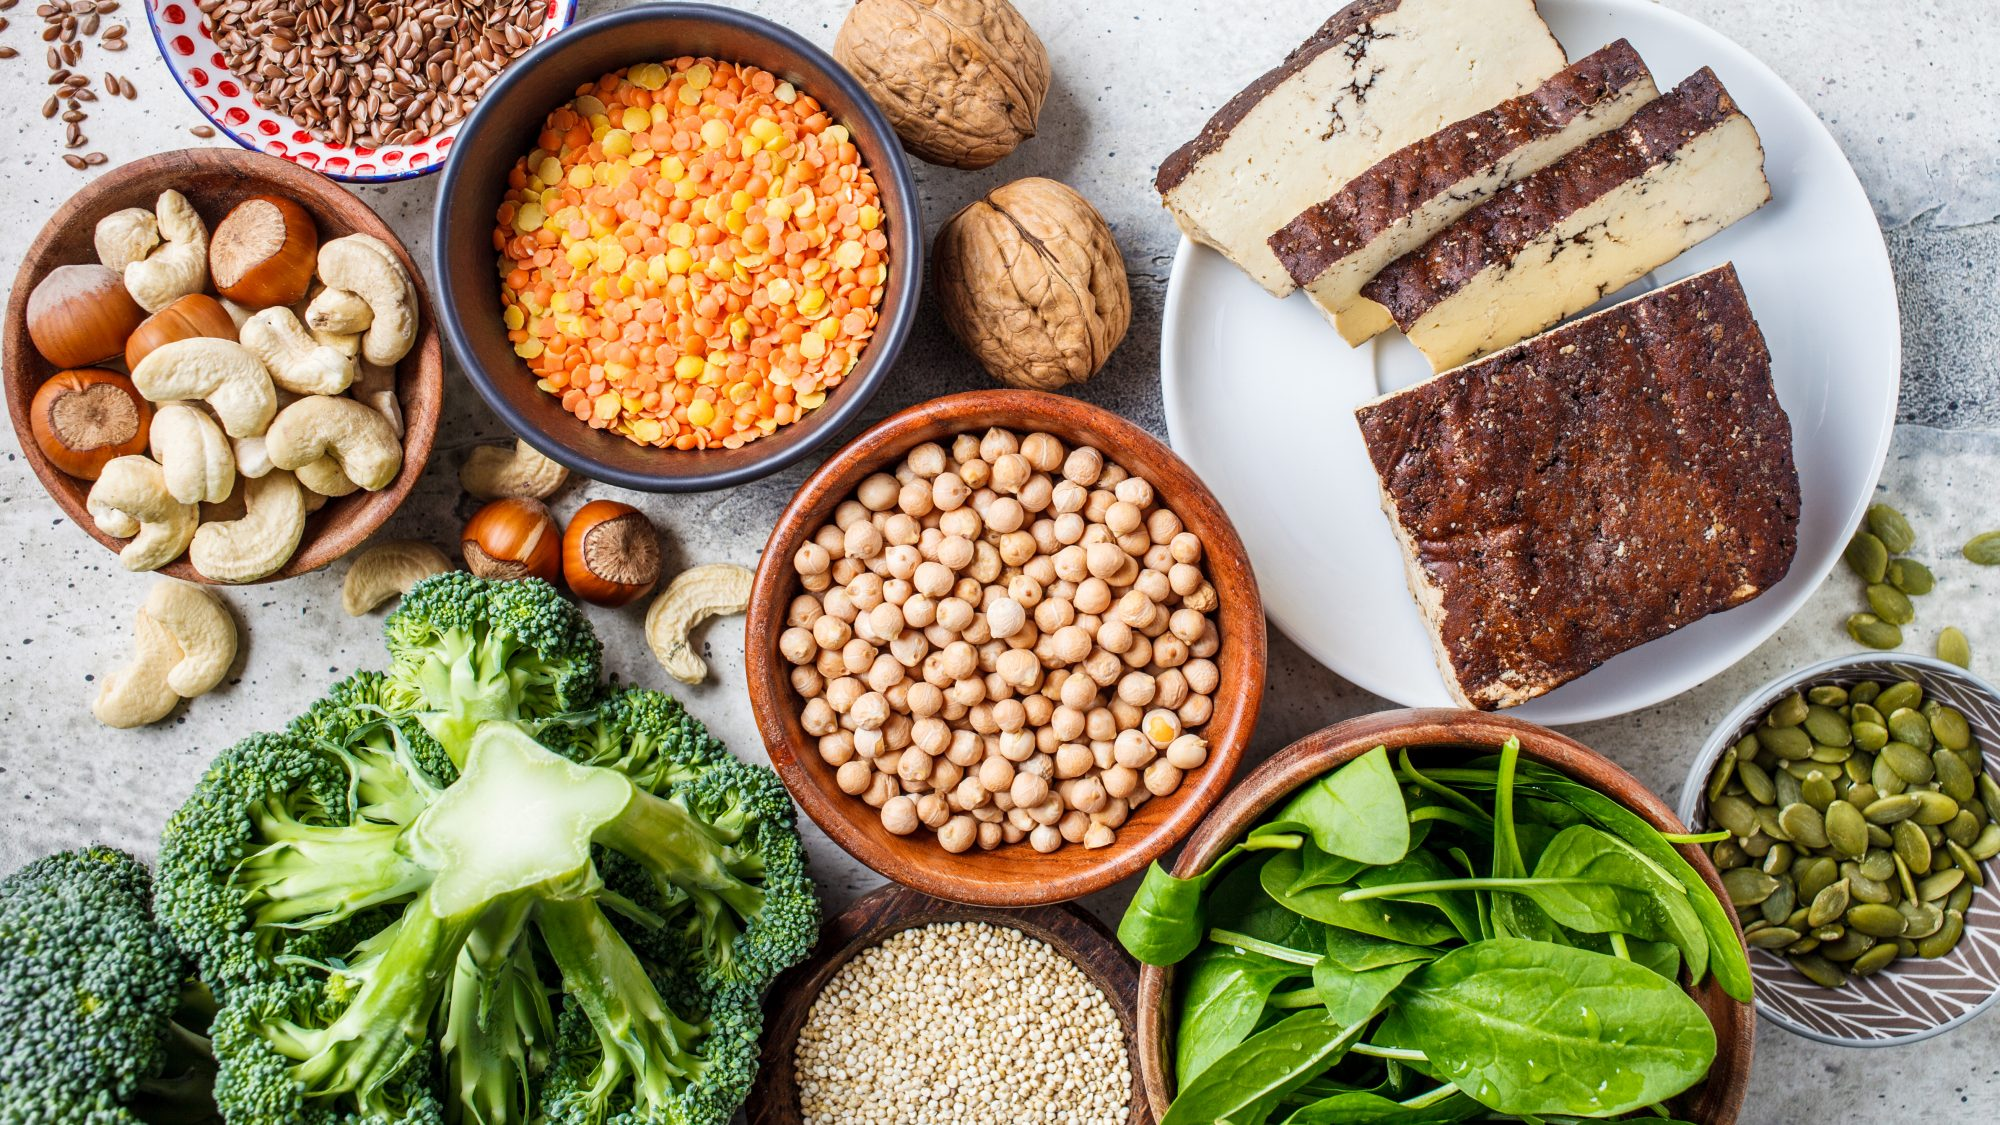 different sources of Vegan protein: lentils, beans, seeds, nuts, and more in bowls on a table